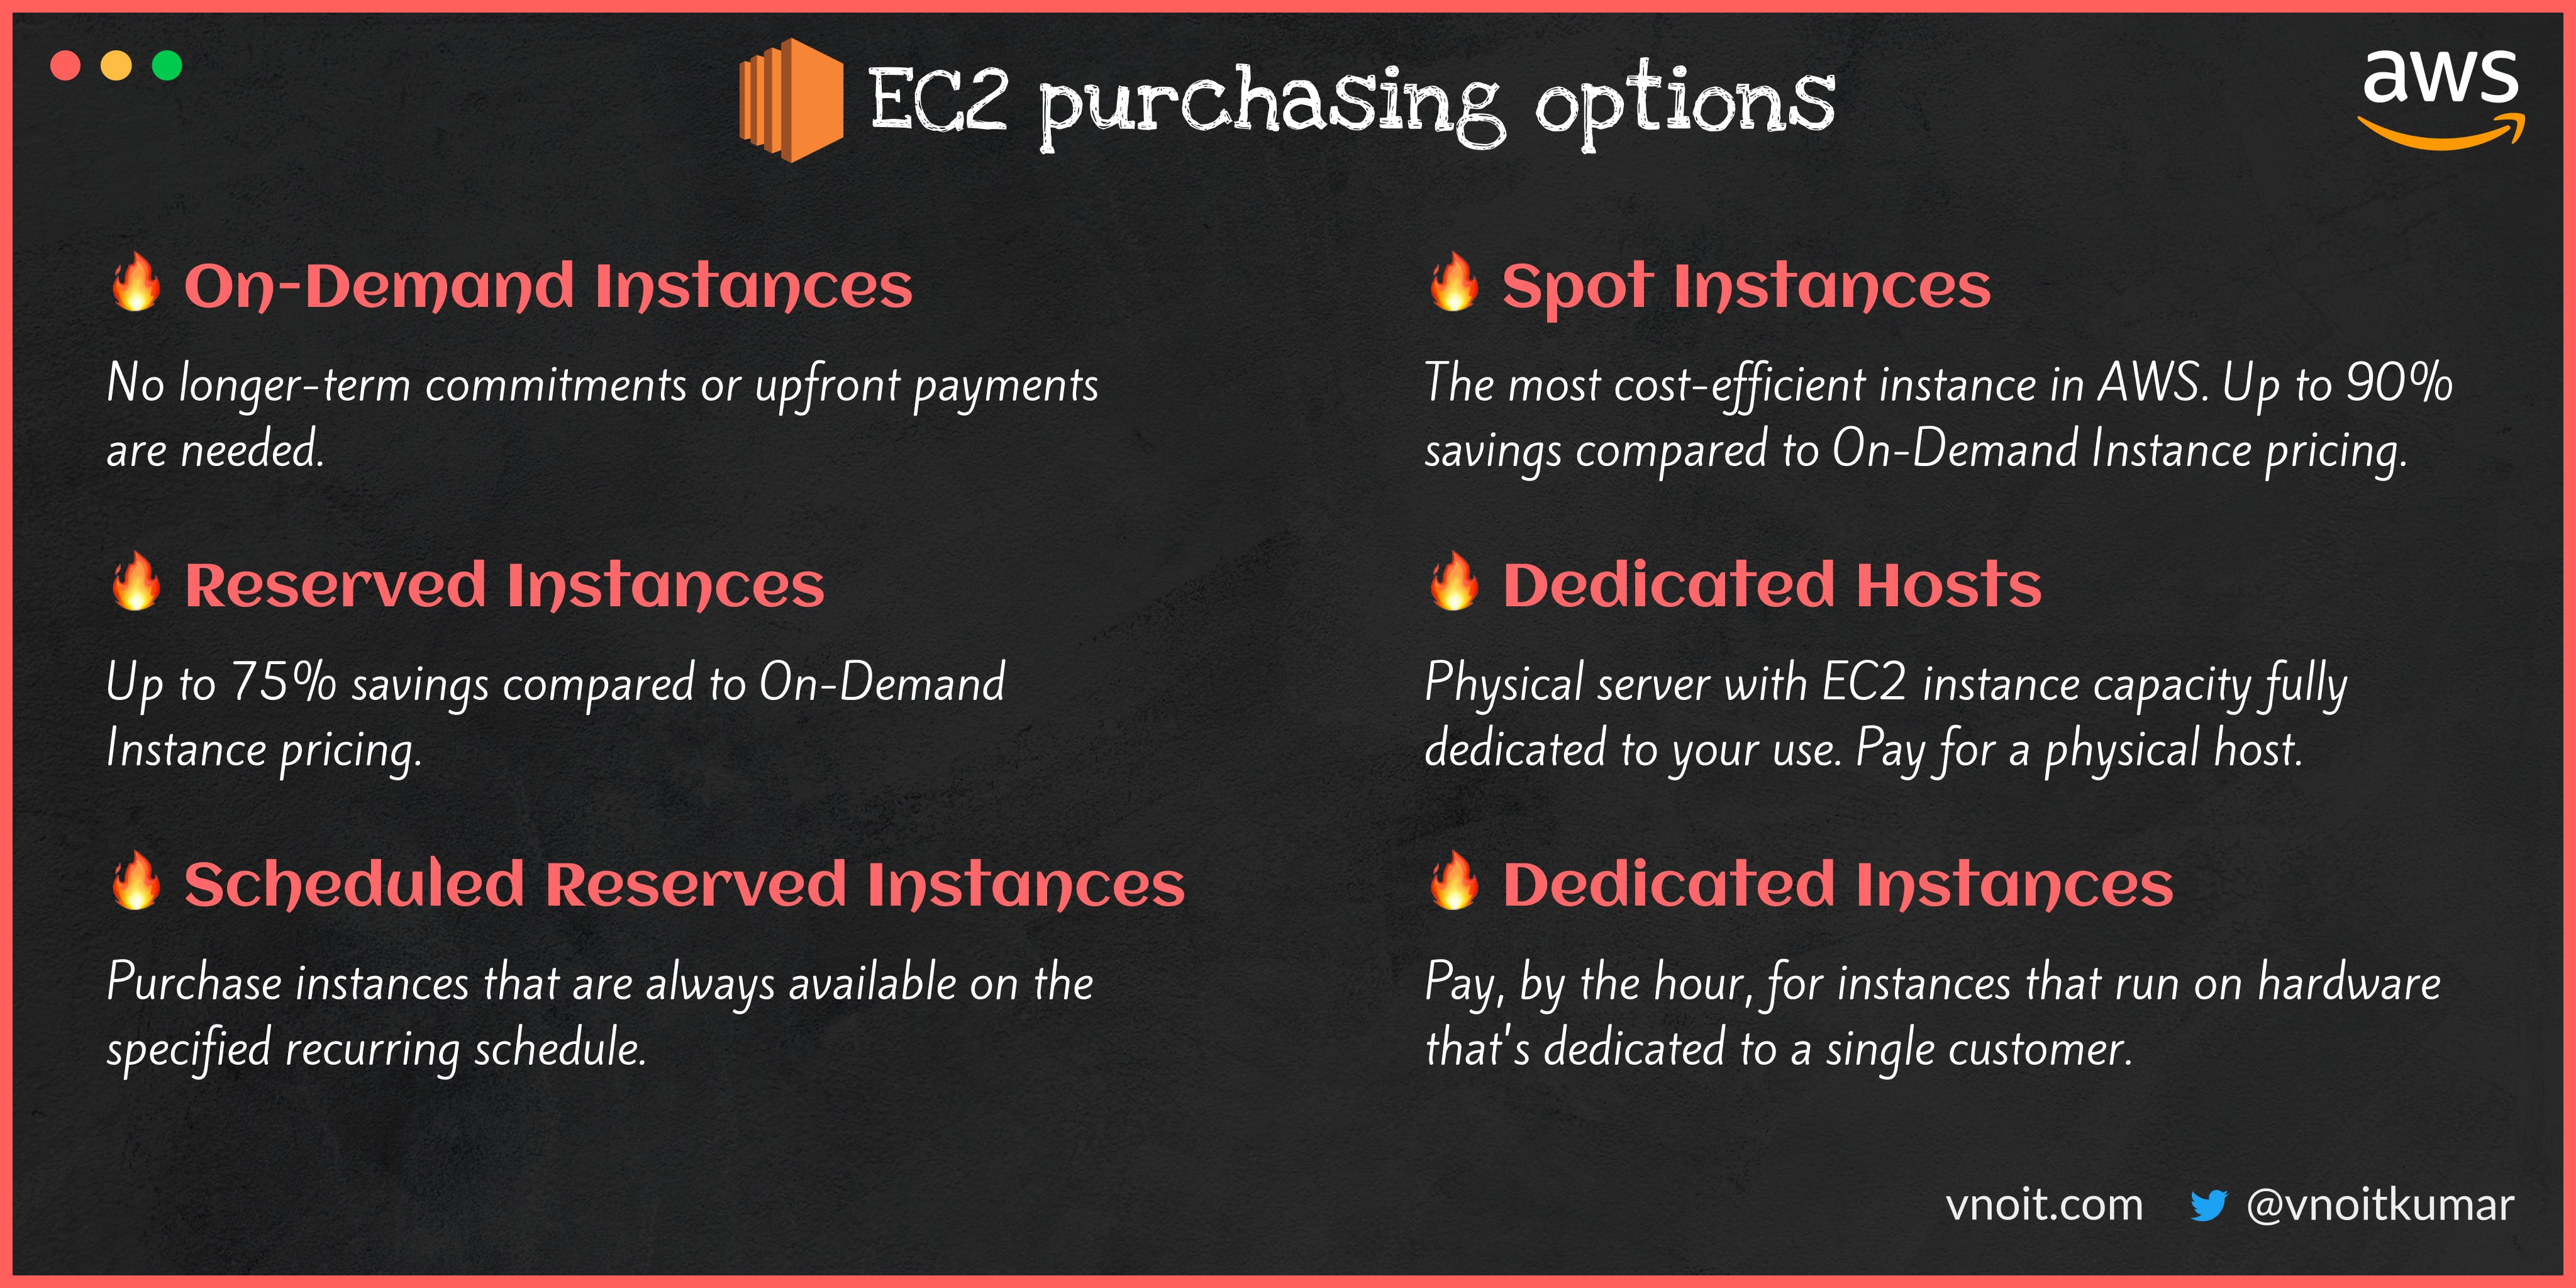 EC2 Launch types